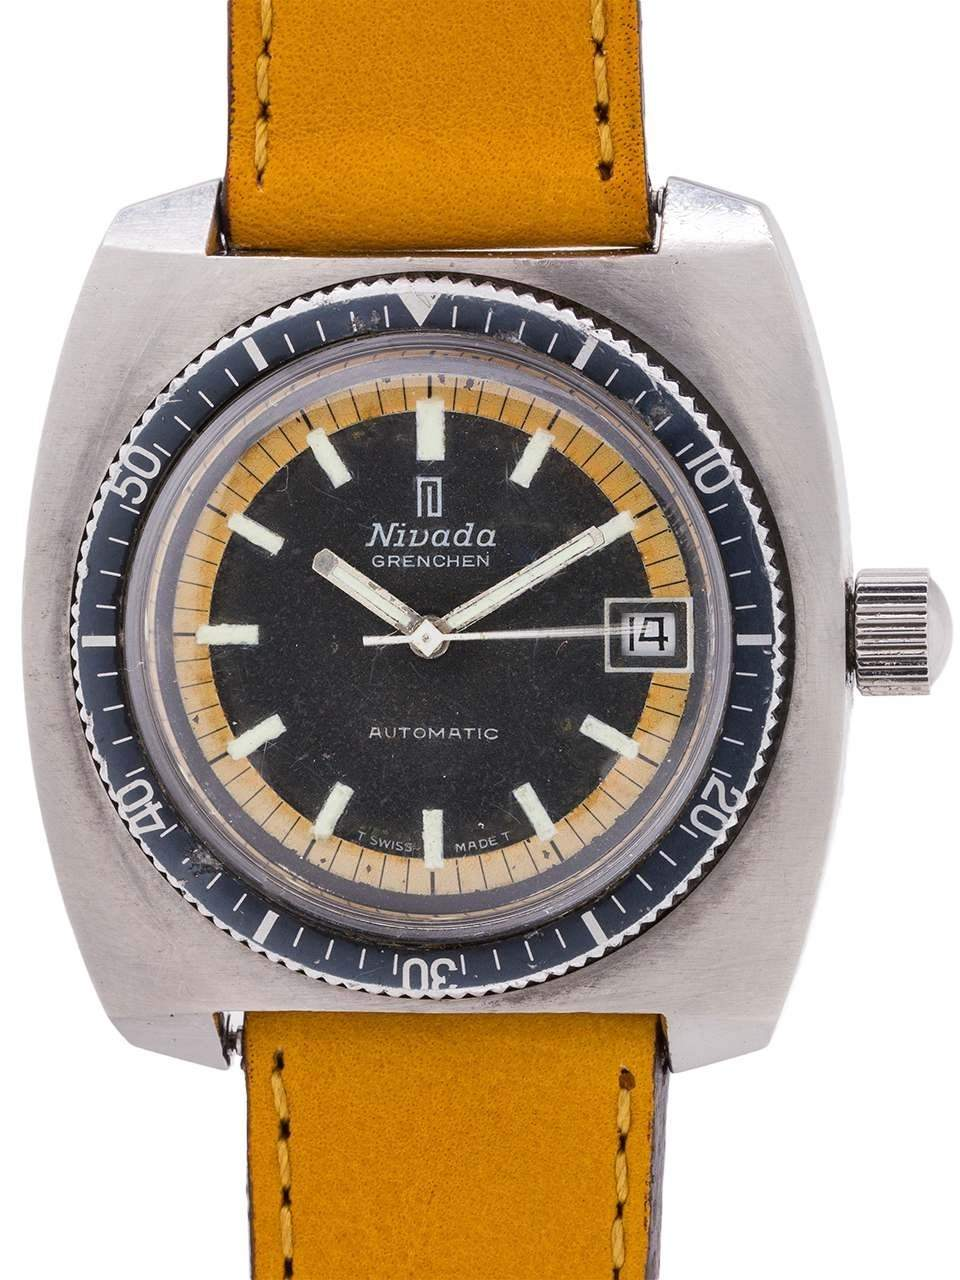 Nivada Grenchen 1960s diving watch